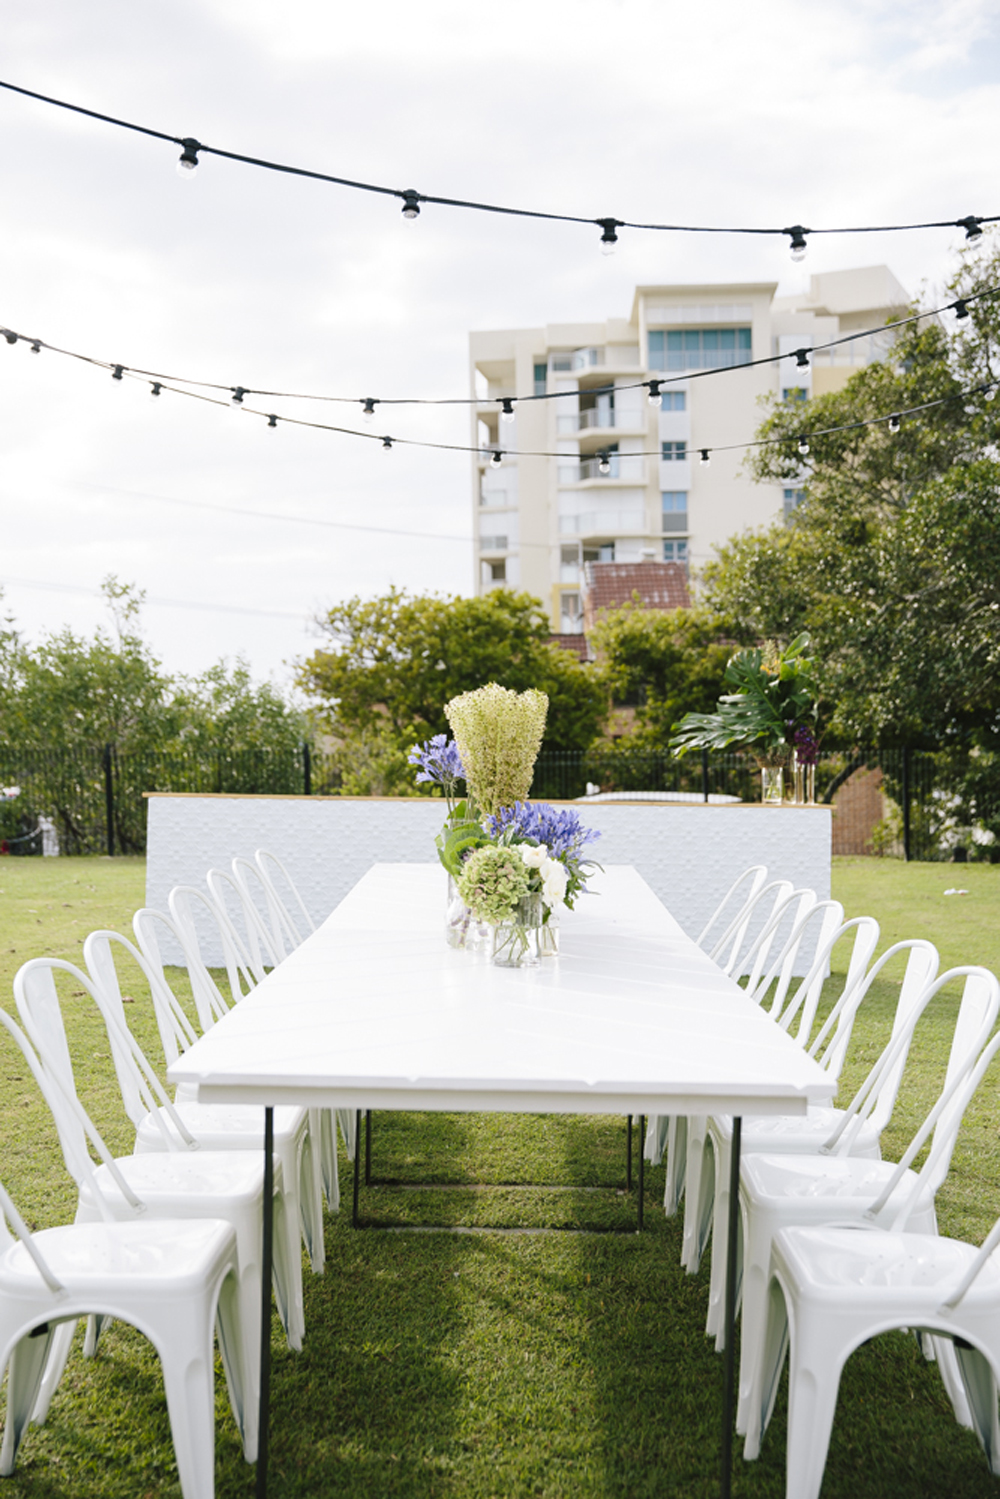 Kirra Hill Community Centre Wedding - Bar and furniture hire by Lovestruck Weddings